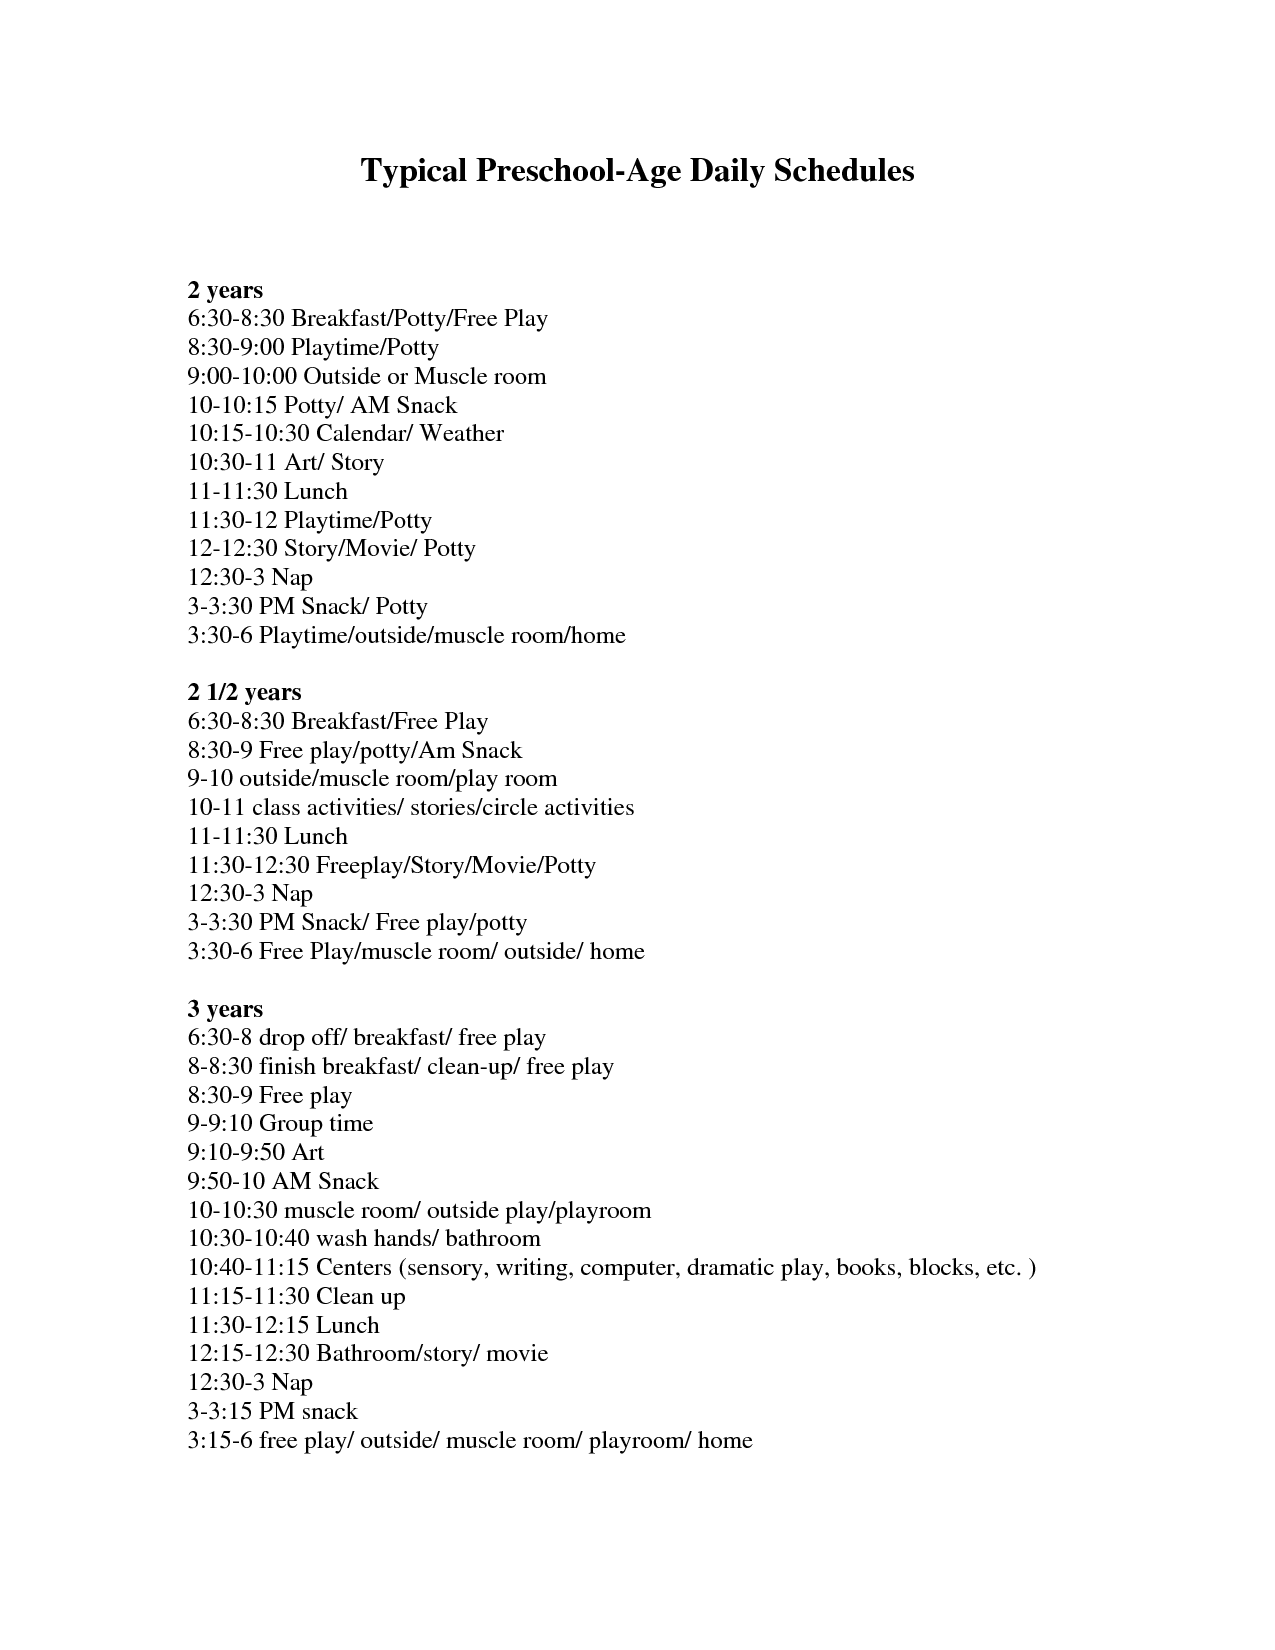 Typical Daily Schedules For 2-3-Year-Olds Note: Have To Sign Up For Docstoc  To Print/download This